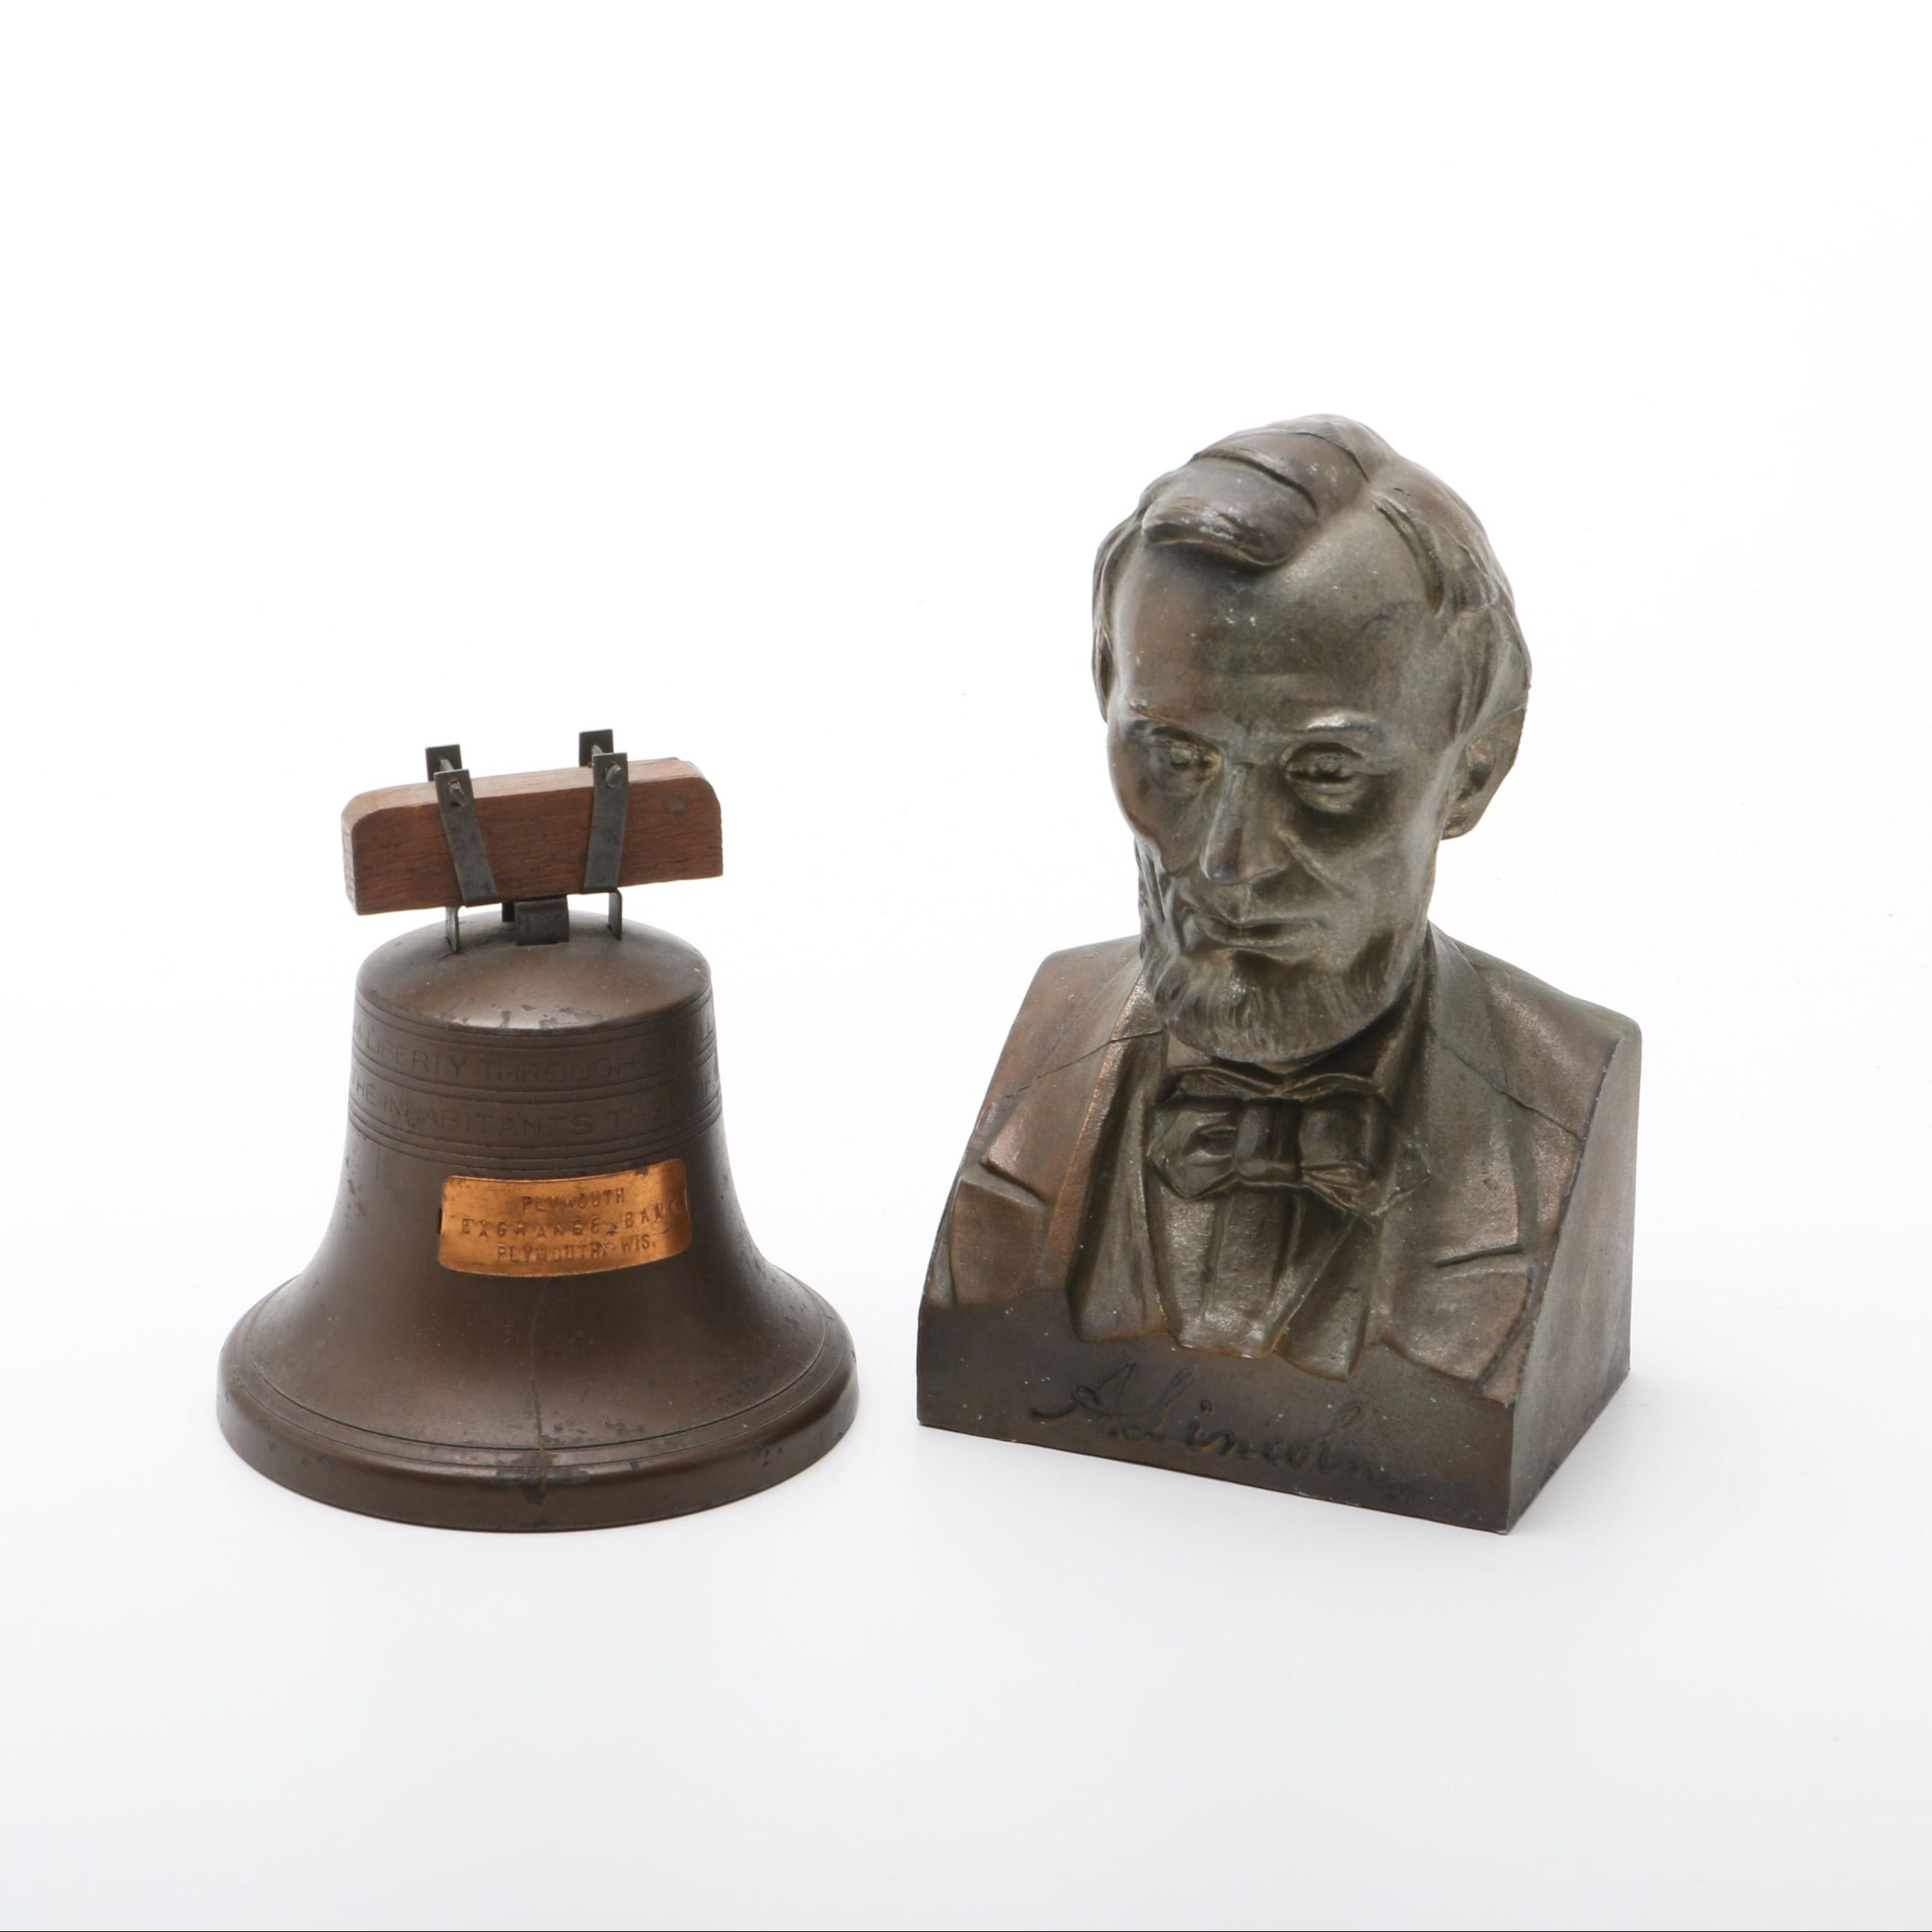 Cast Metal Promotional Coin Banks Including Liberty Bell and Lincoln Bust